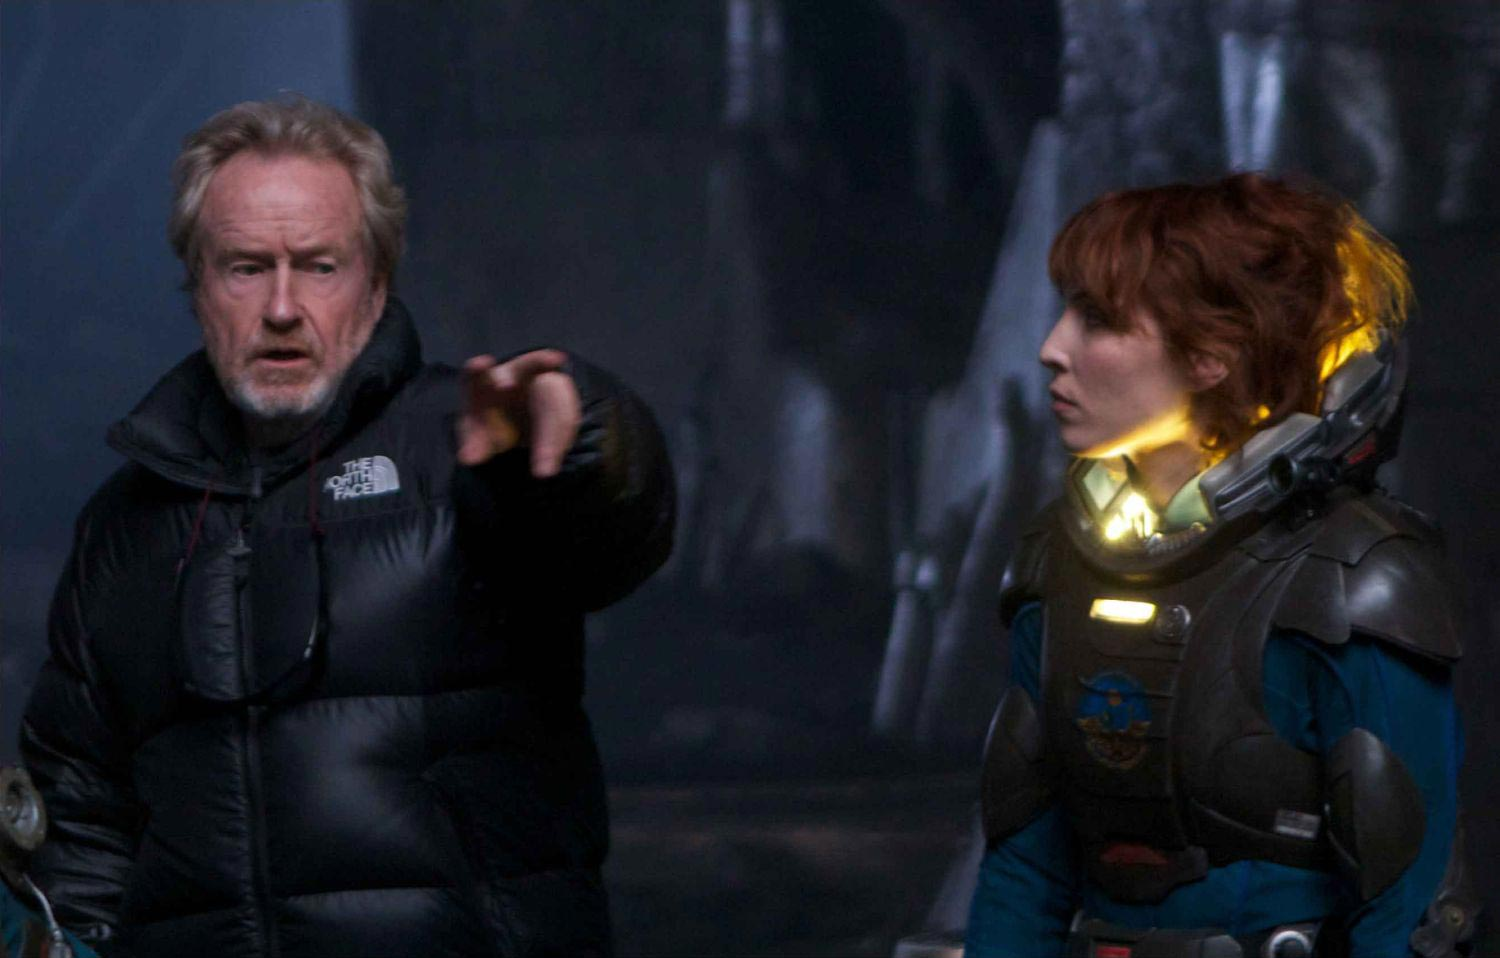 RIDLEY SCOTT PROMISES TO RUIN ALIEN COMPLETELY